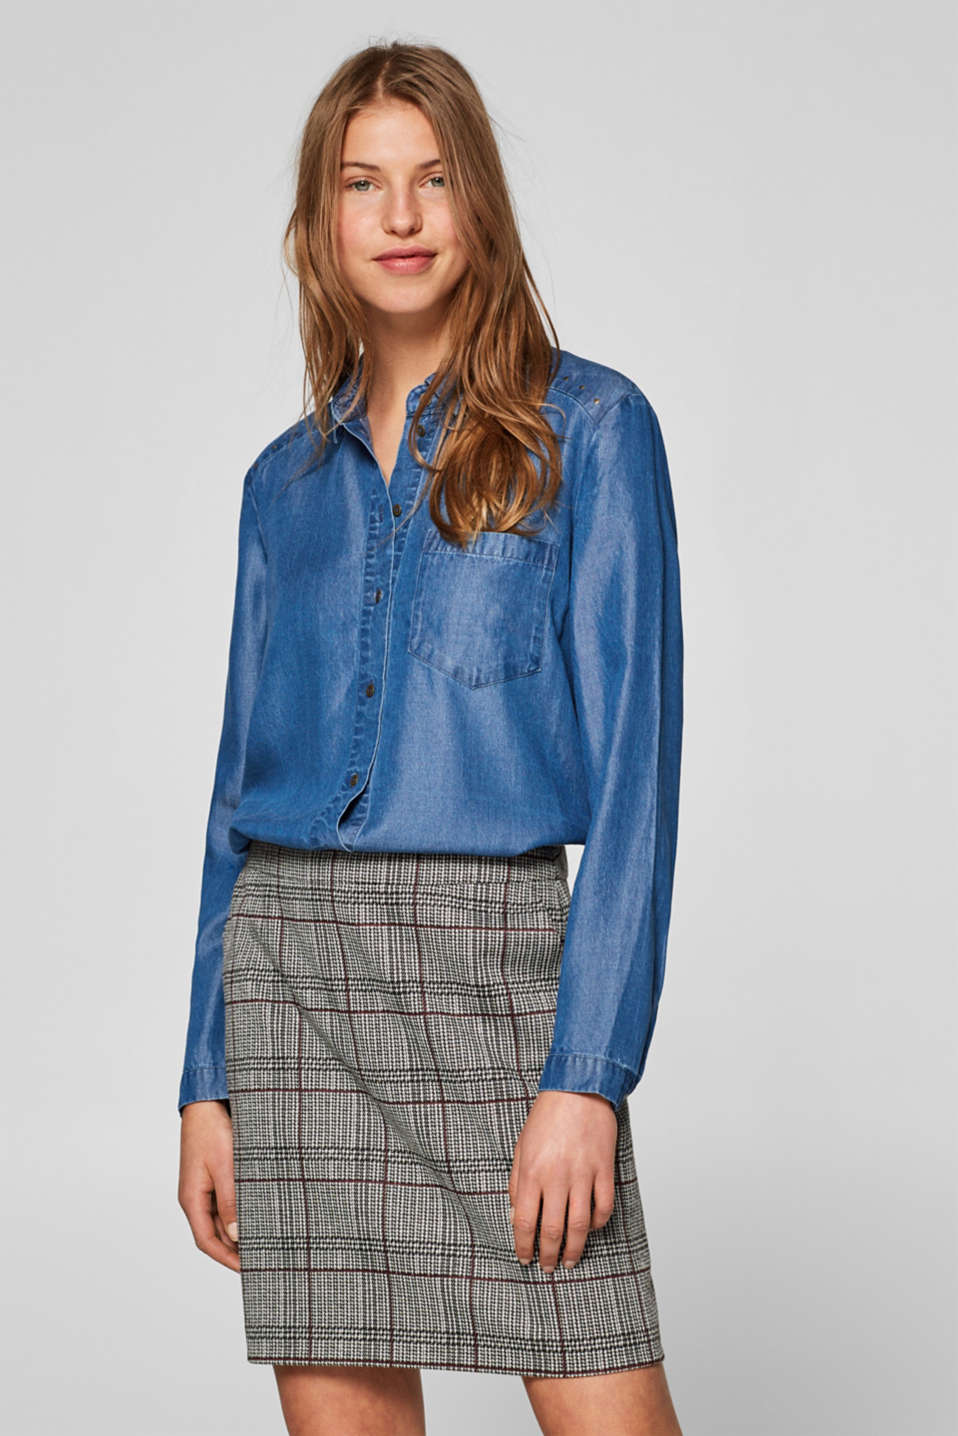 edc - Denim-effect lyocell blouse trimmed with studs